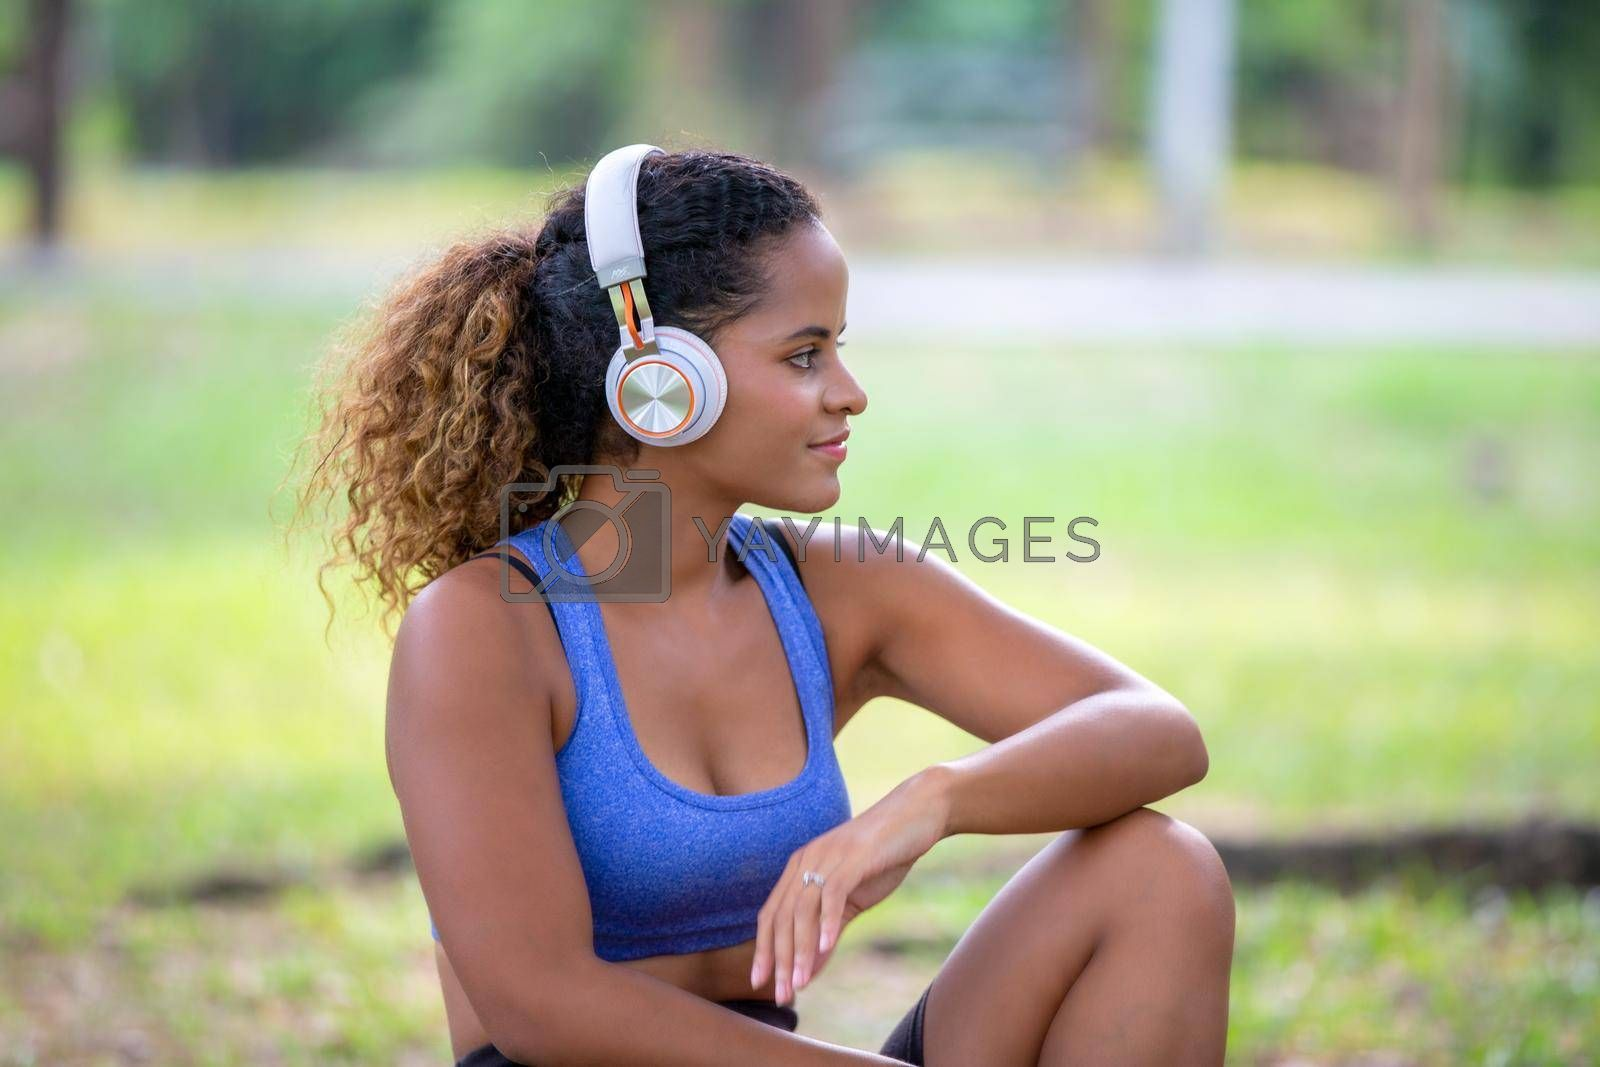 Young attractive smiling woman practicing yoga pose, working out, wearing sportswear pants, bra, full length, outdoor.